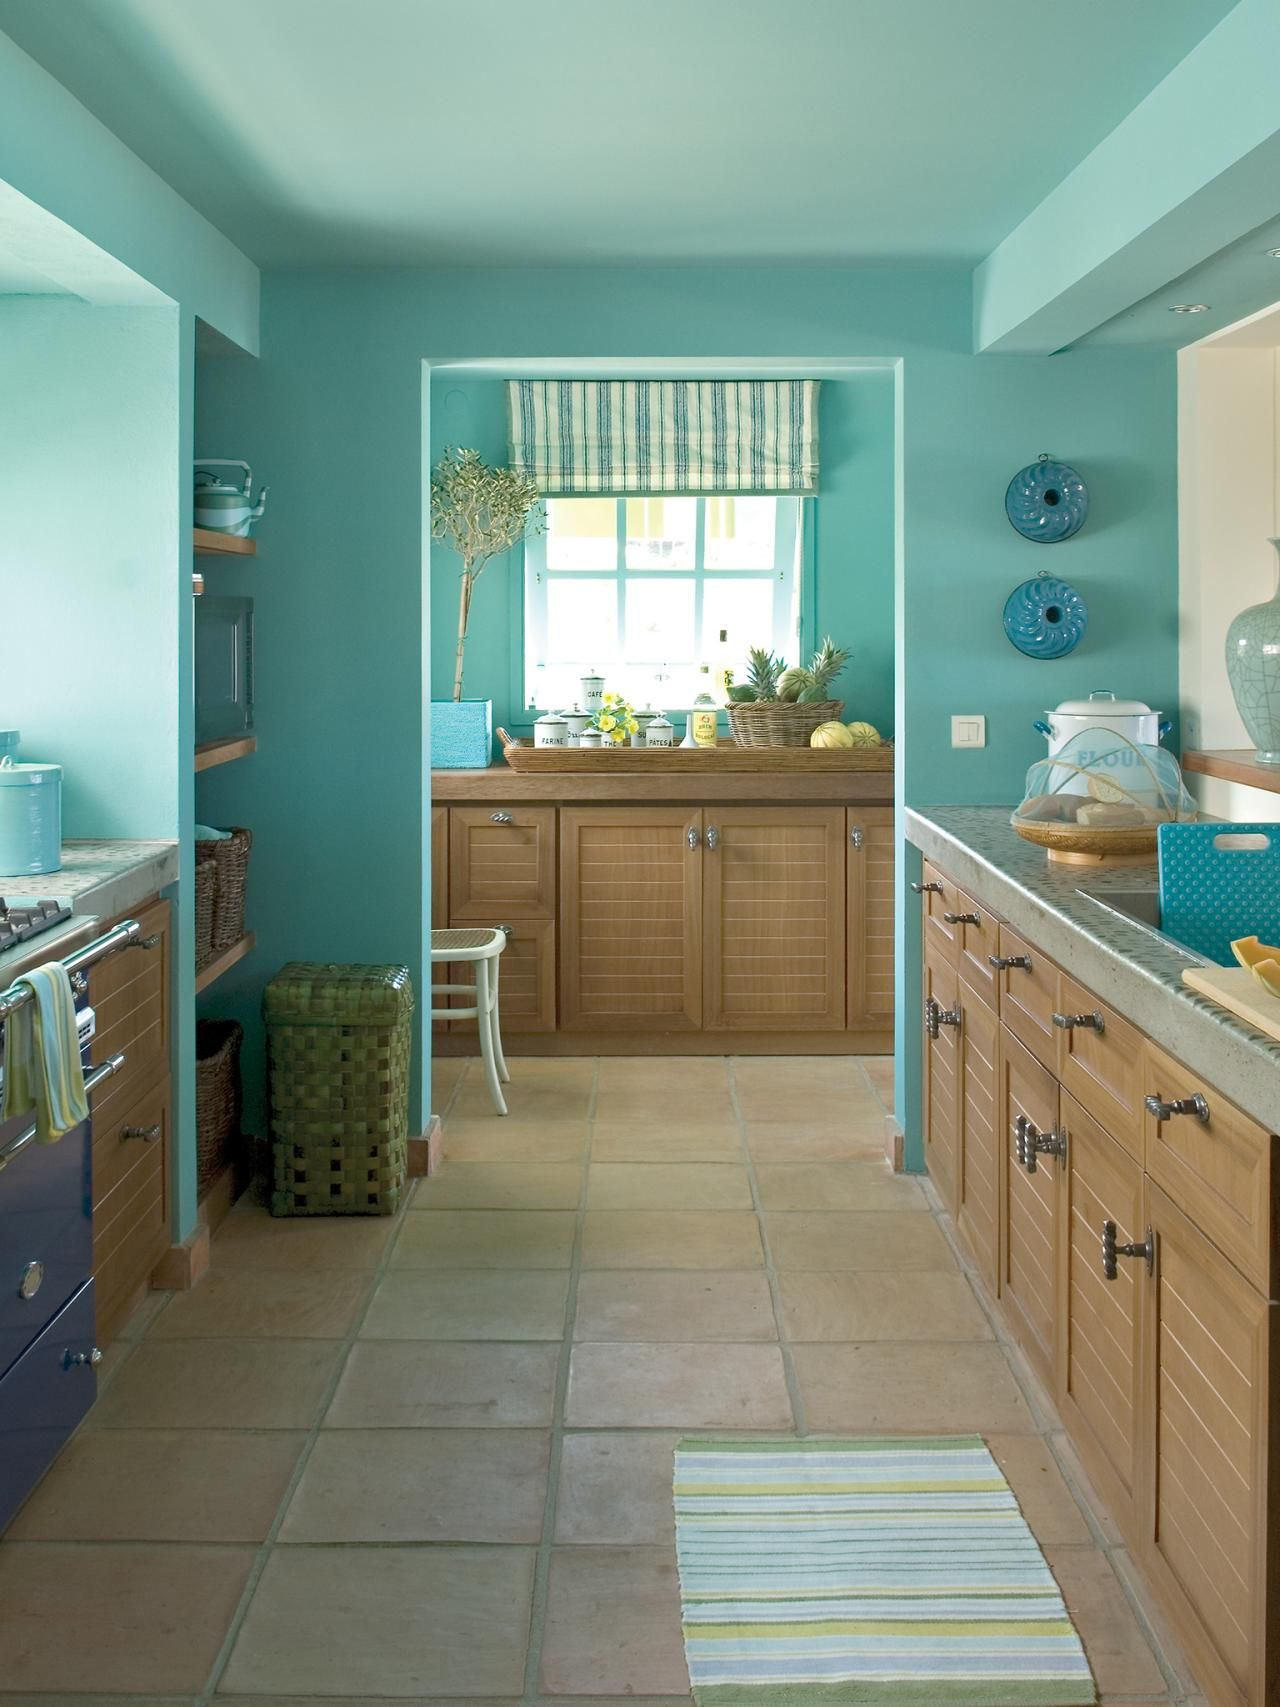 Pictures of Colorful Kitchens: Ideas for Using Color in the Kitchen ...